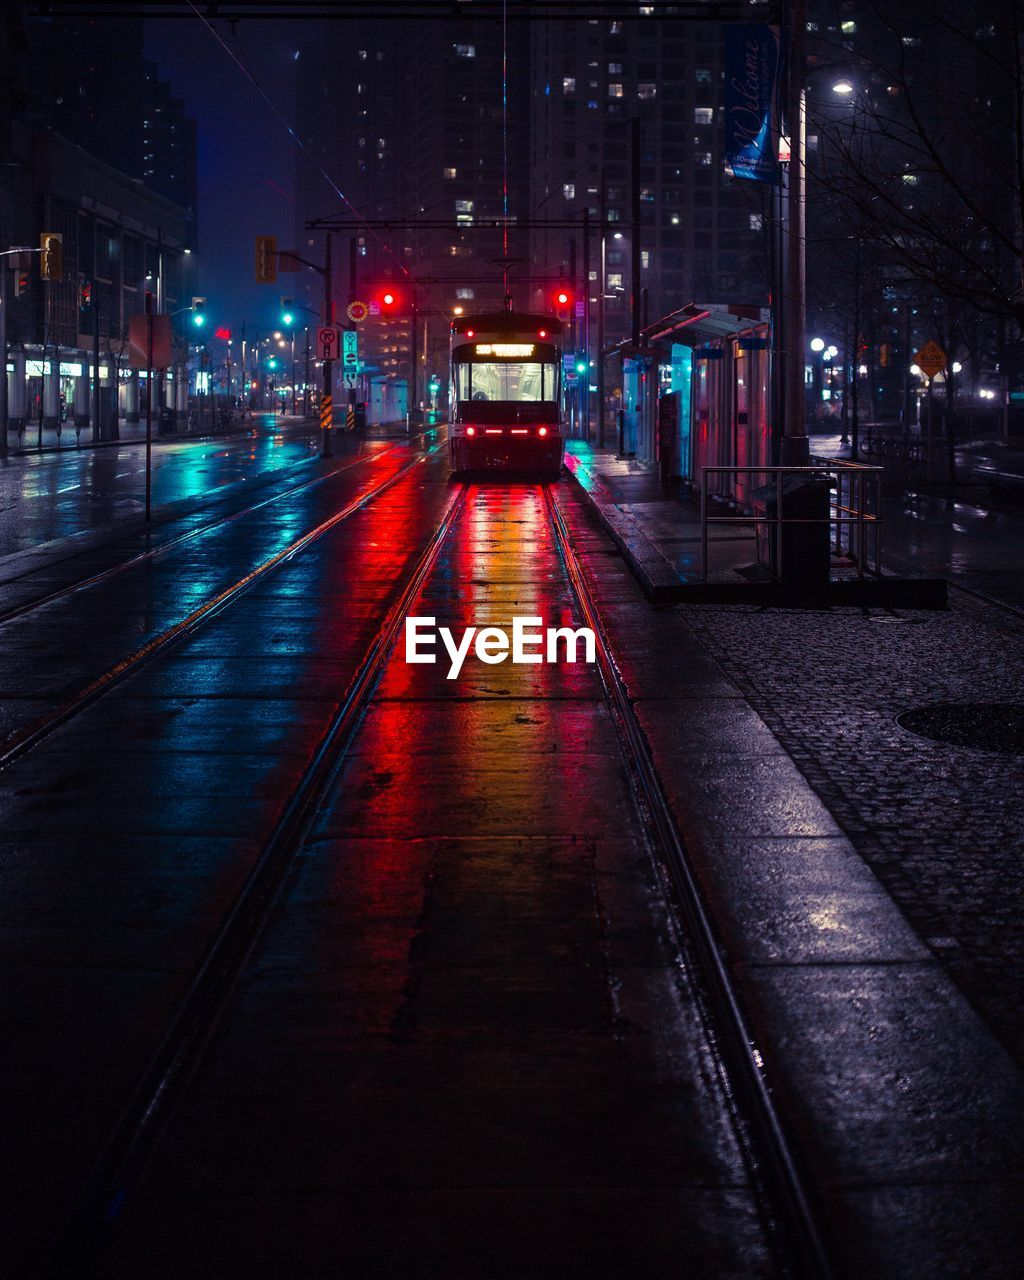 Railroad Car On Tramway In City At Night